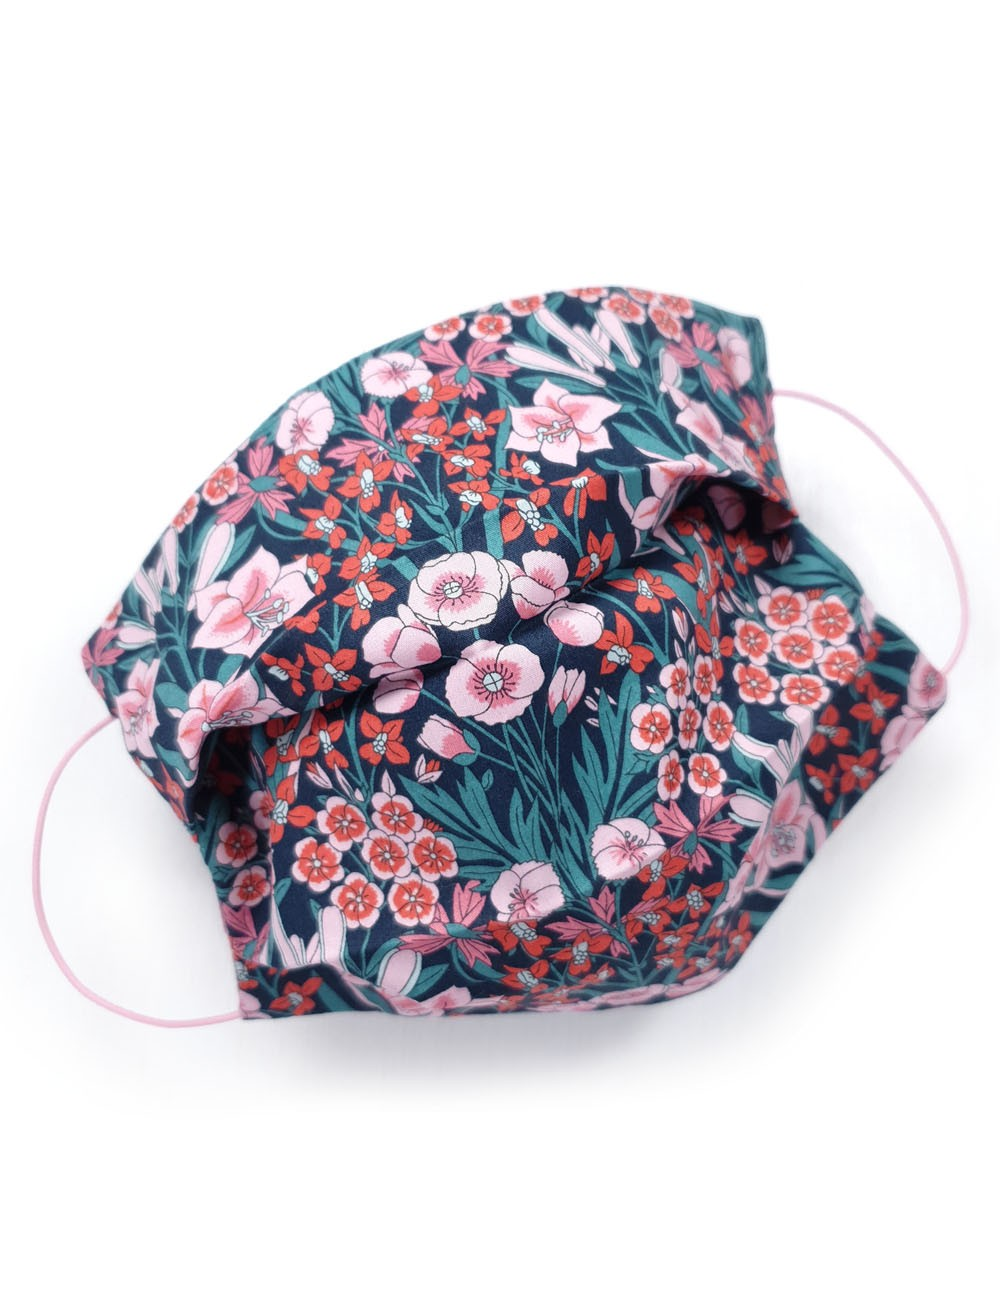 covid mask reusable colourful and floral